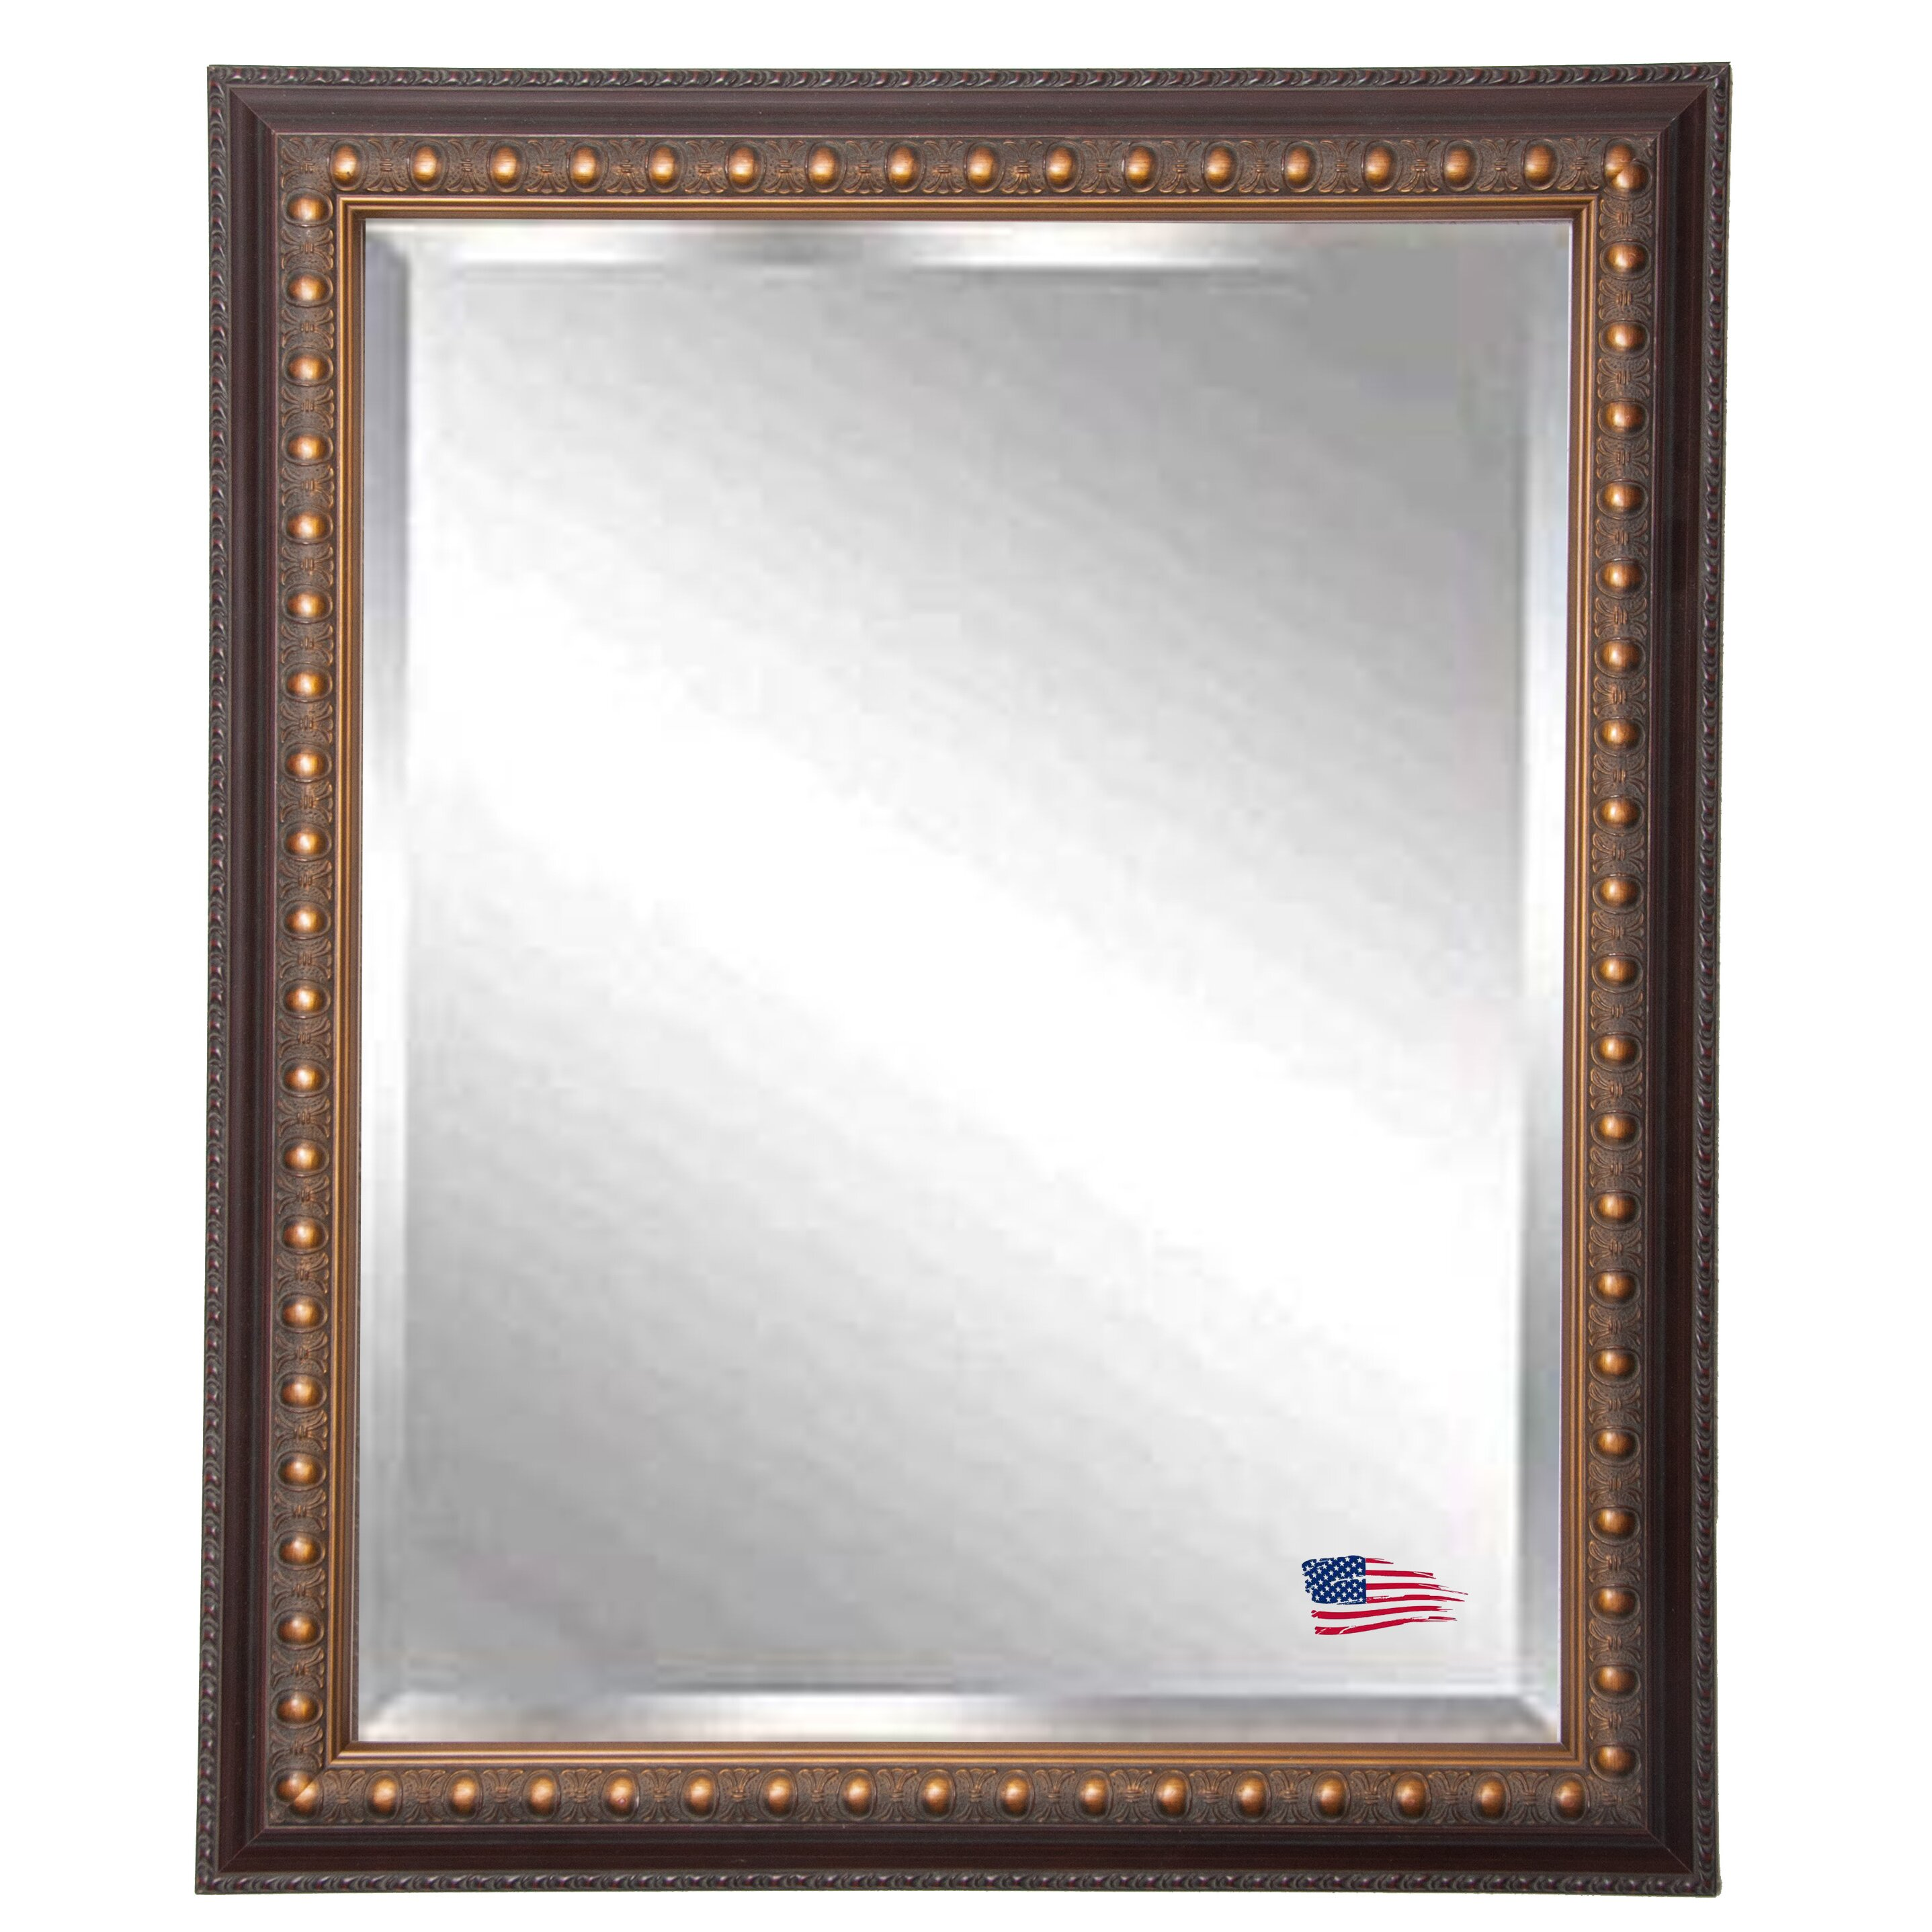 Rayne mirrors jovie jane traditional wall mirror reviews for Traditional mirror